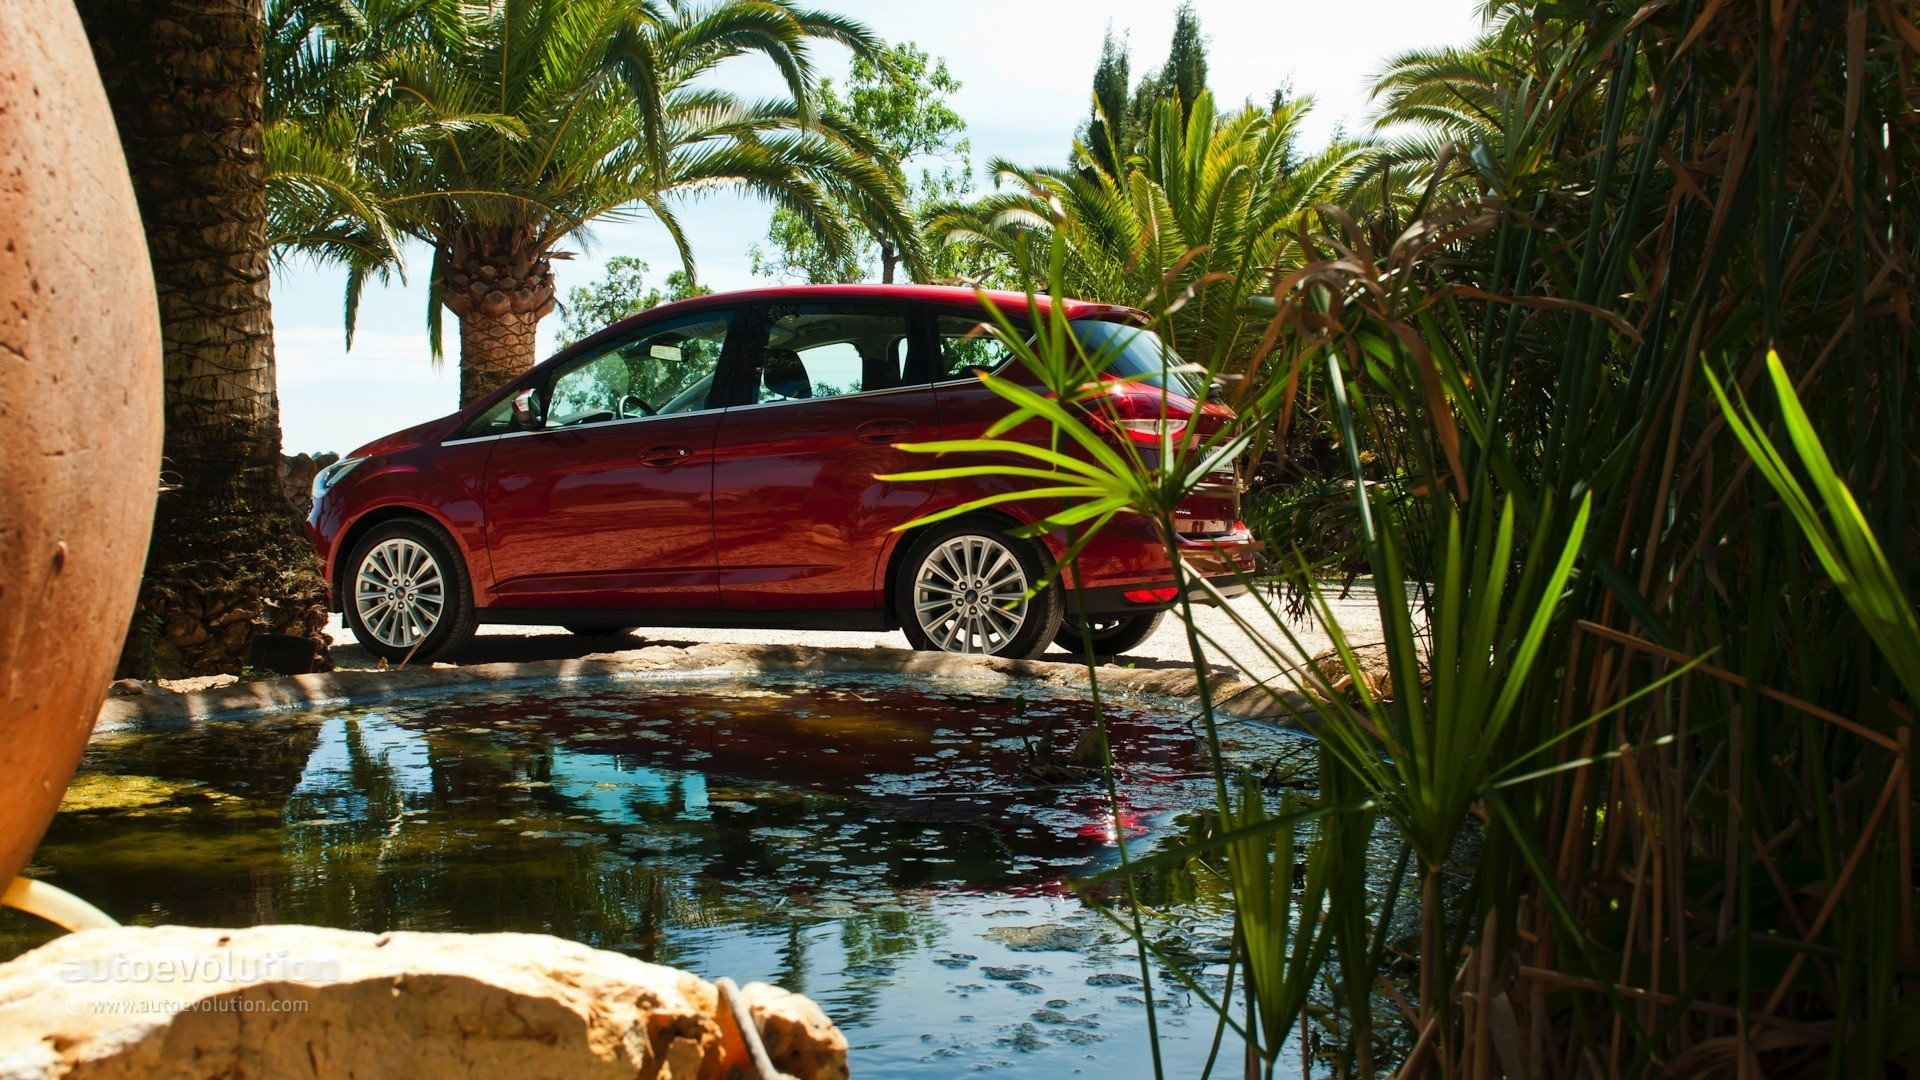 2015 Ford C-Max and Grand C-Max HD Wallpapers: The Oasis